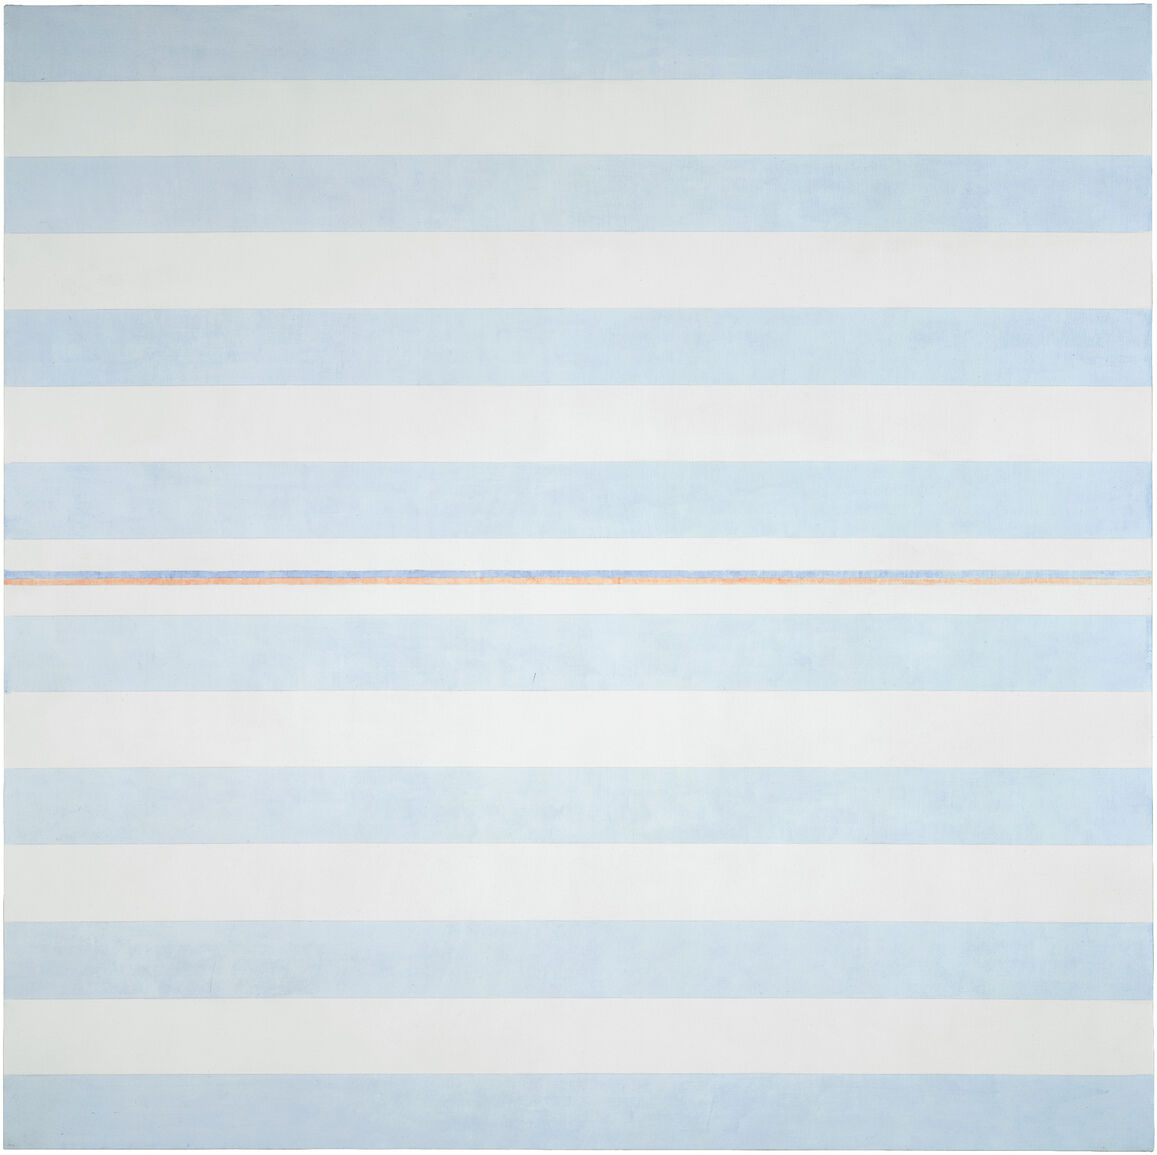 Agnes Martin, Blessings, 2000. © 2018 Estate of Agnes Martin /Artists Rights Society (ARS), New York.